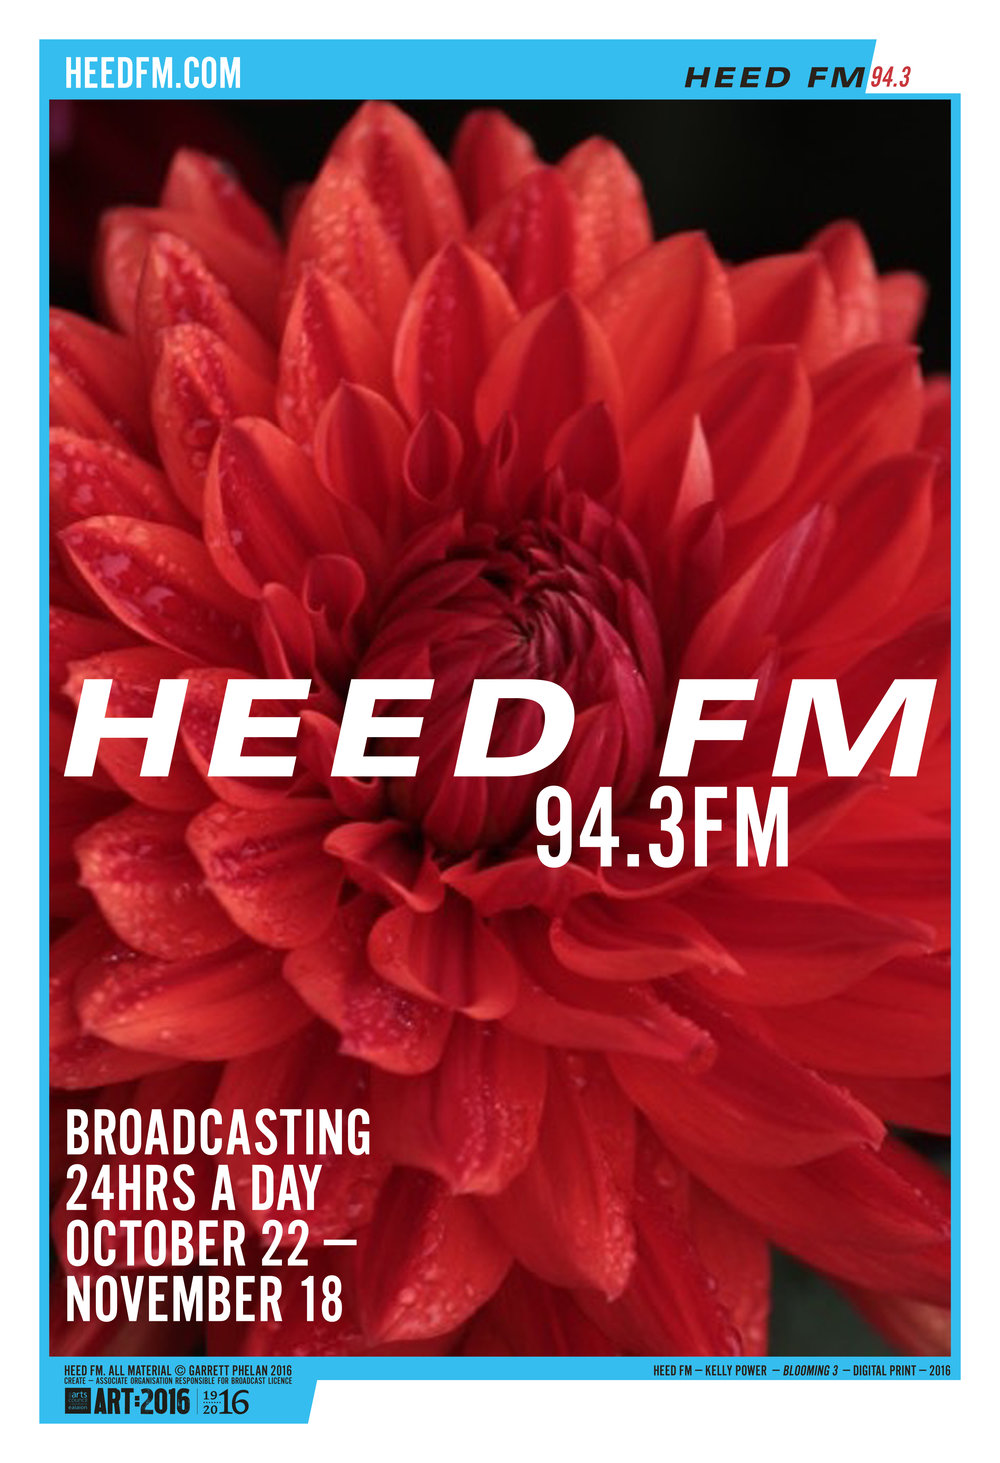 heed fm 4 sheets artwork-28.jpg